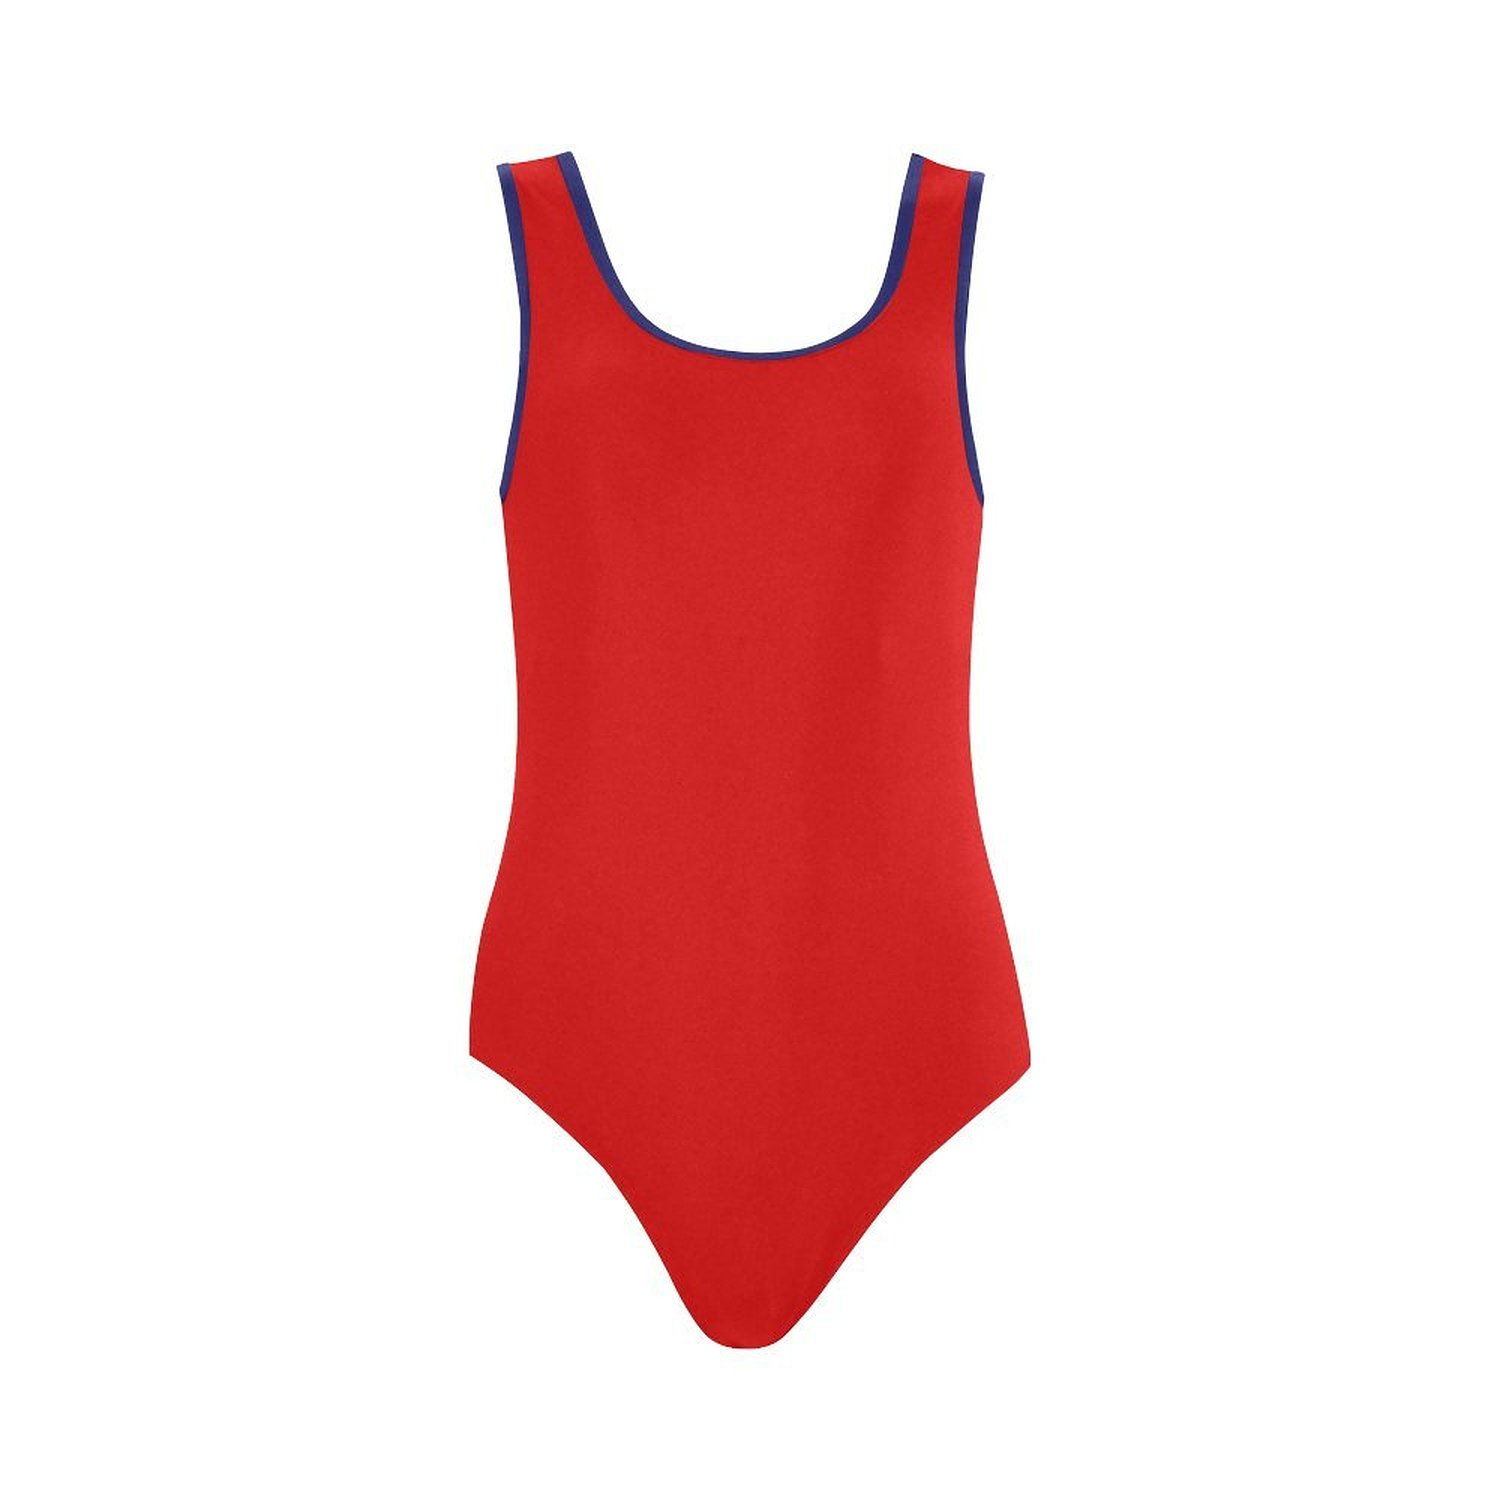 e945d7dae5045 Get Quotations · Find Arts Customized Red White Blue Swimsuit Vest One  Piece Swimsuit Bathing Suit Beachwear